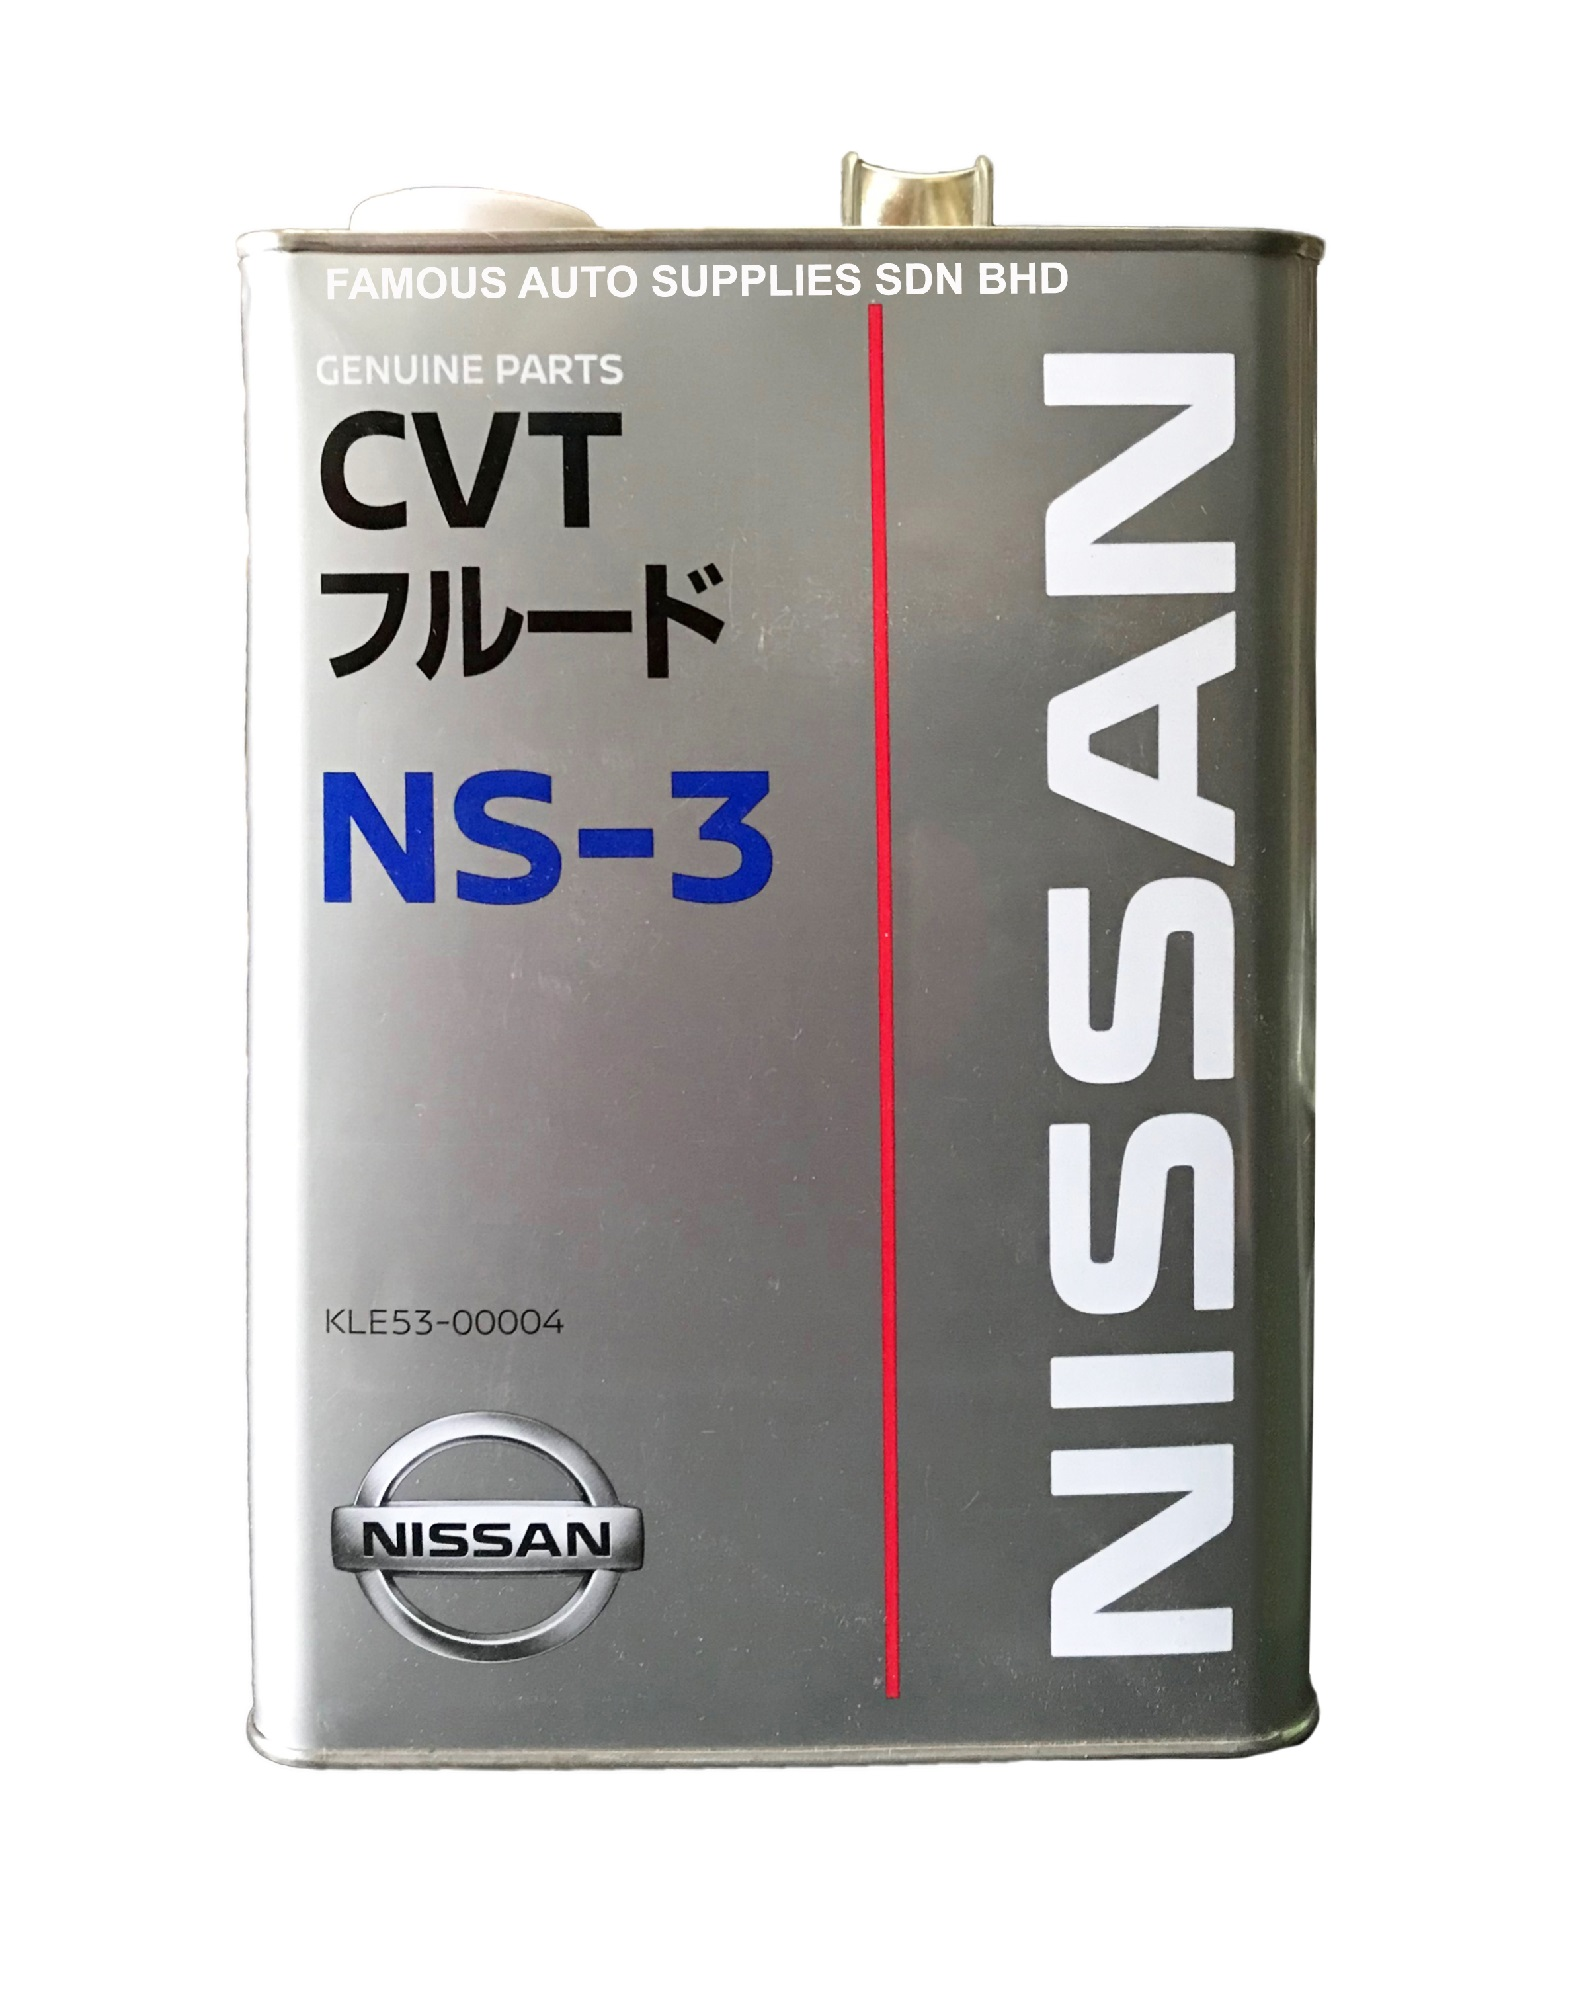 Nissan NS3 CVT Fluid